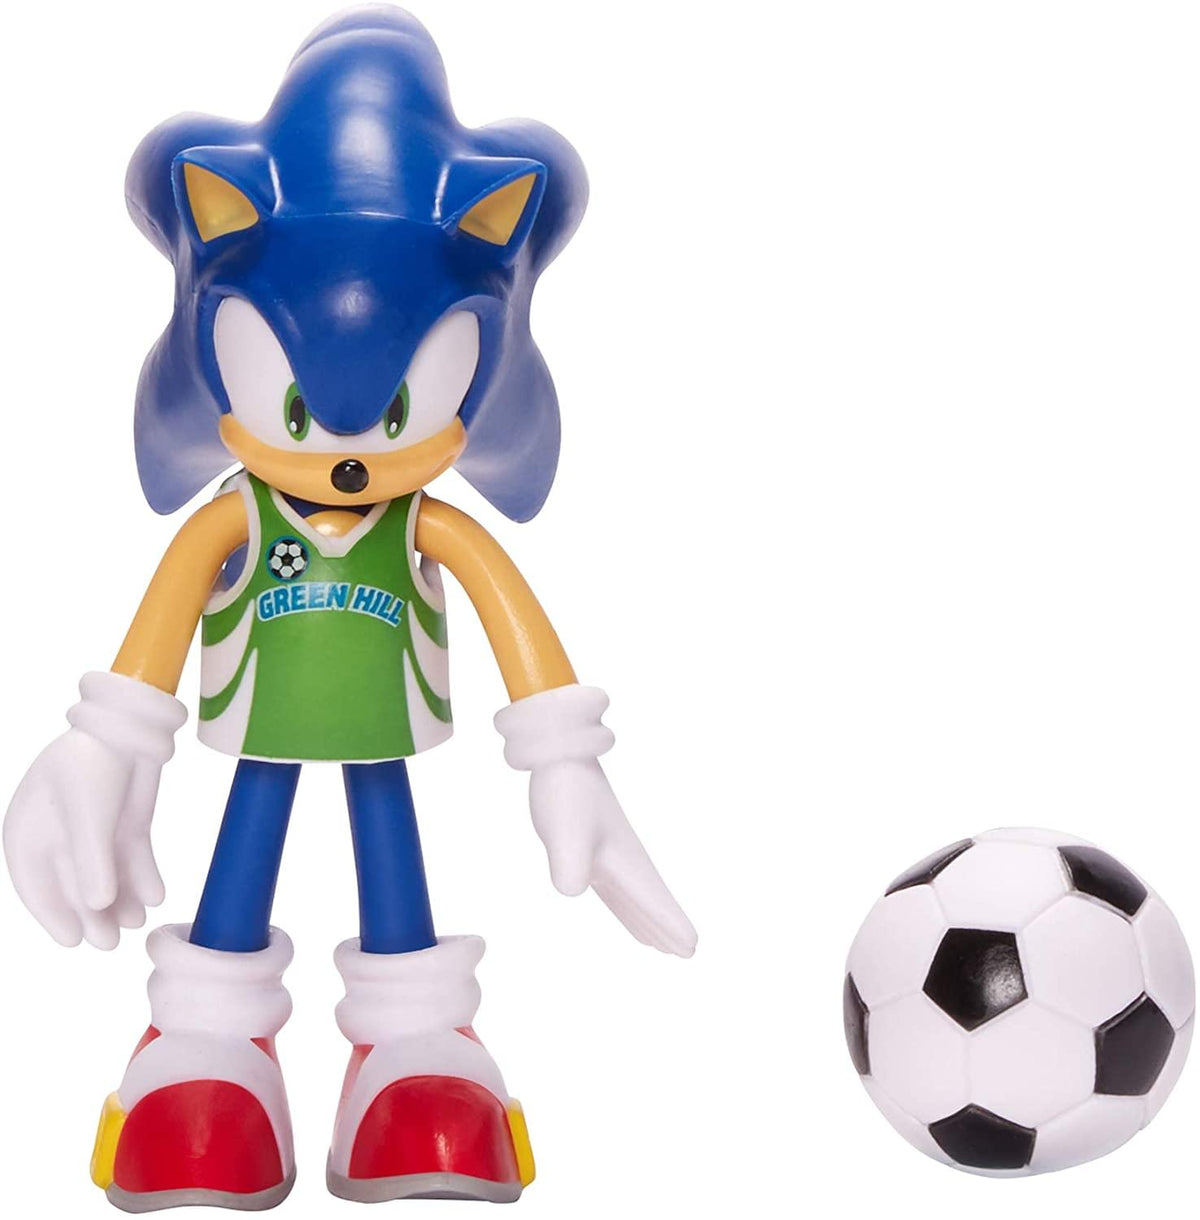 Sonic the Hedgehog 4 Inch Bendable Figure | Soccor Sonic